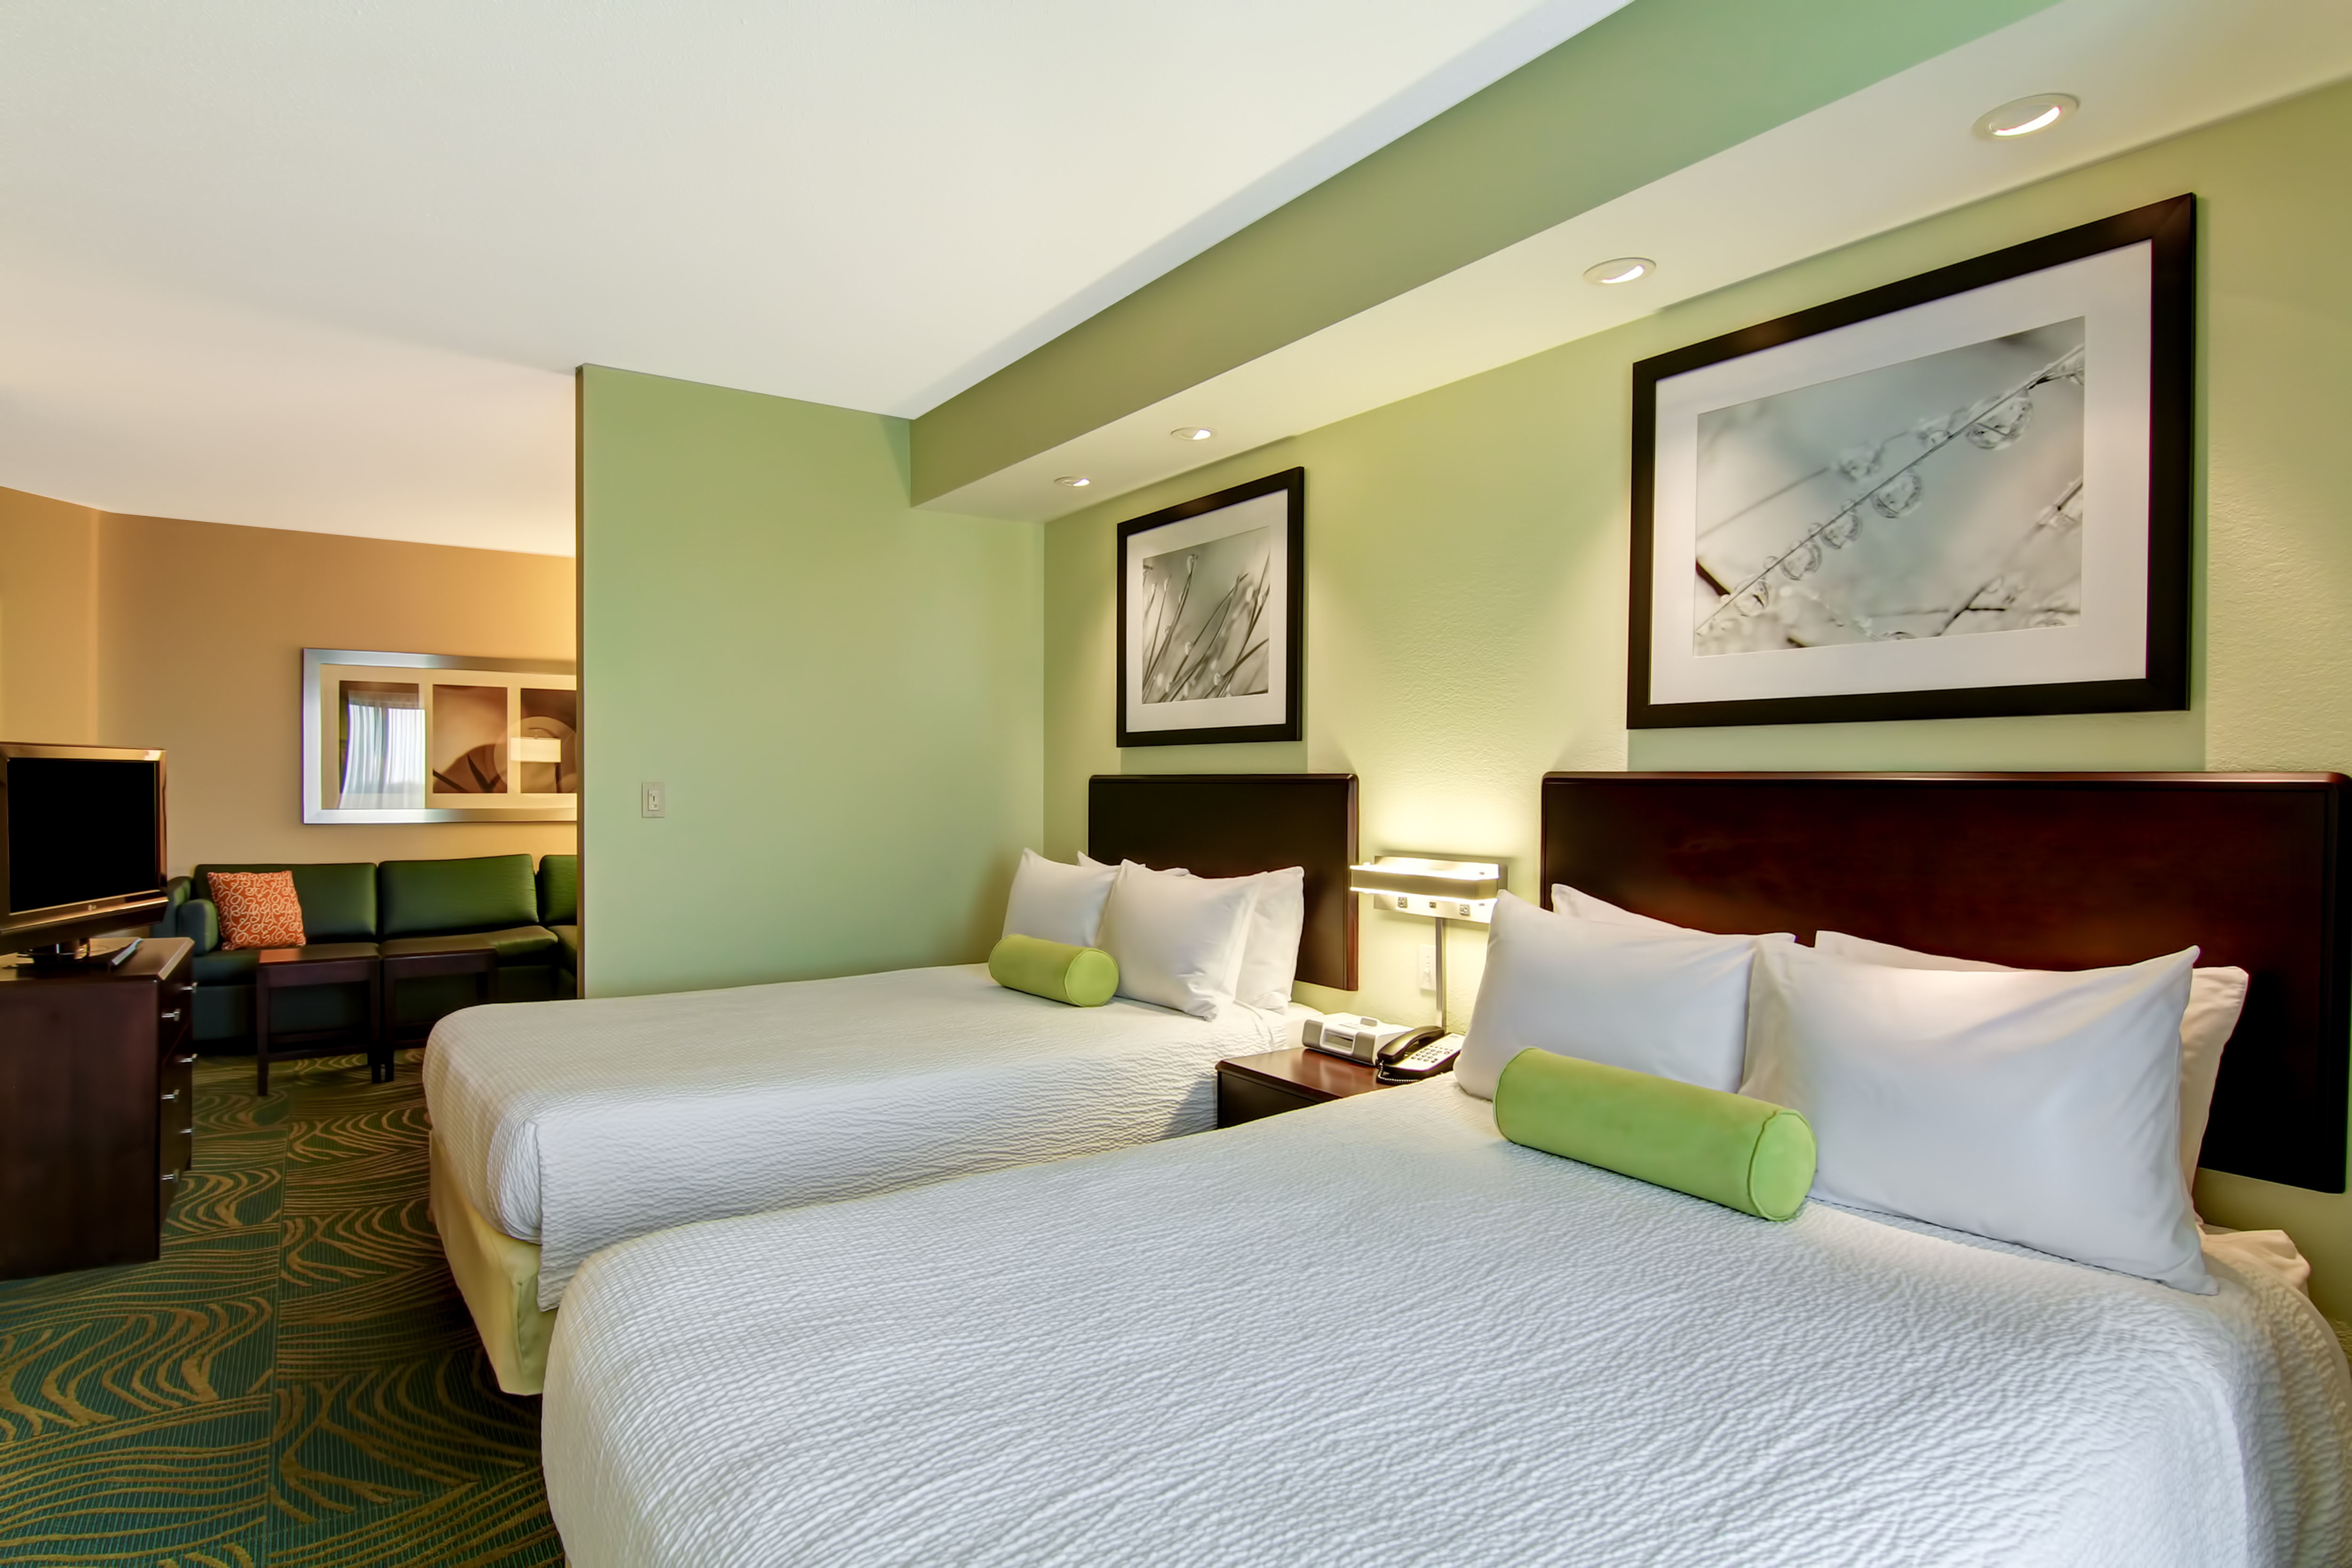 SpringHill Suites by Marriott Erie image 4